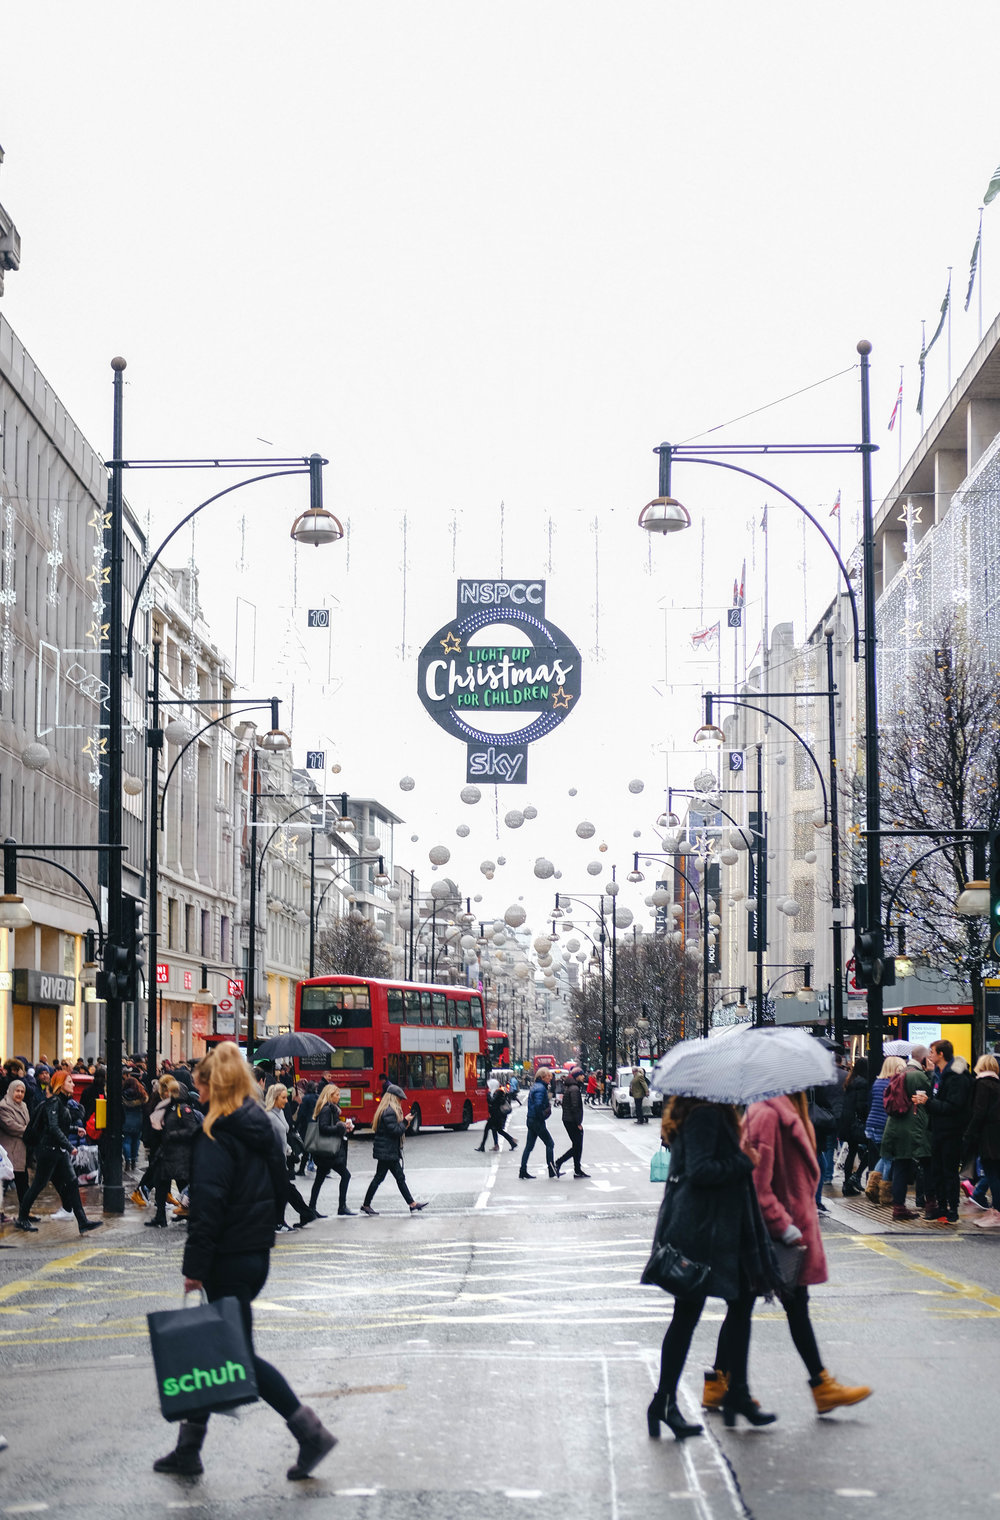 "<p style=""font-family:brandon-grotesque;font-weight:500; font-size:11px; text-center:left; color:light grey;letter-spacing: 1px"">DECEMBER 21, 2017 • CHRISTMAS ON OXFORD ST. • 📍 London, UK</p>"